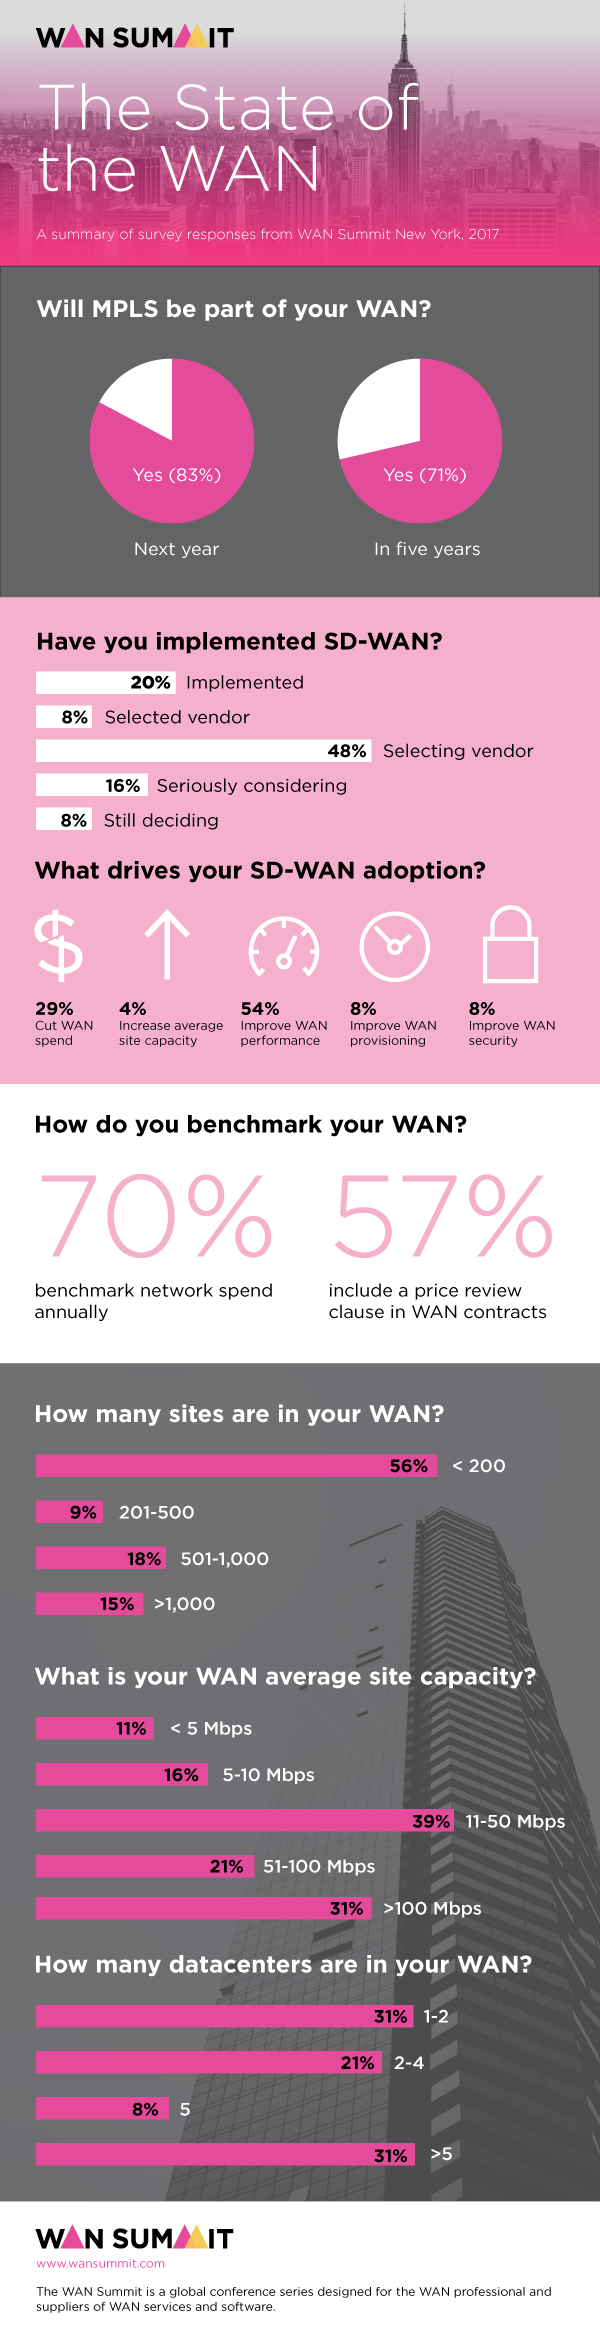 wsnyc17-infographic.png